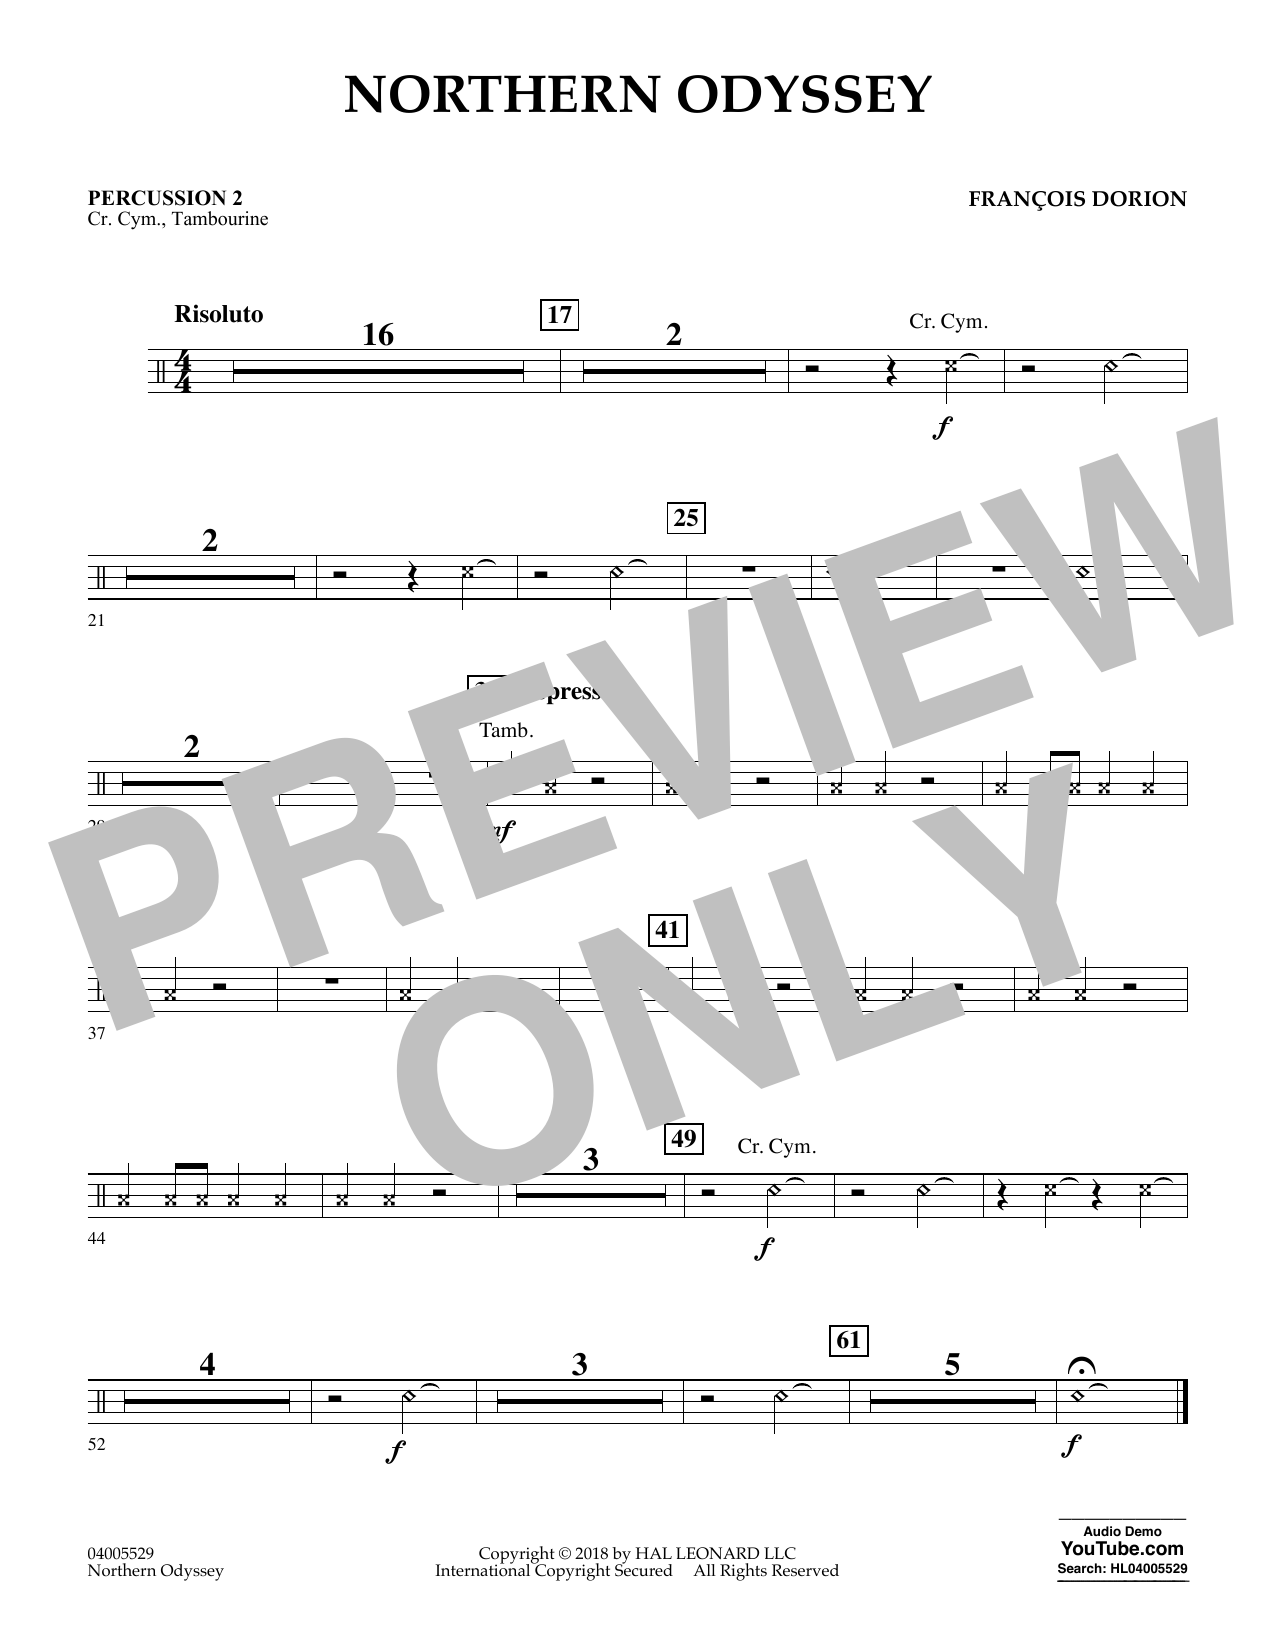 Northern Odyssey - Percussion 2 (Concert Band)